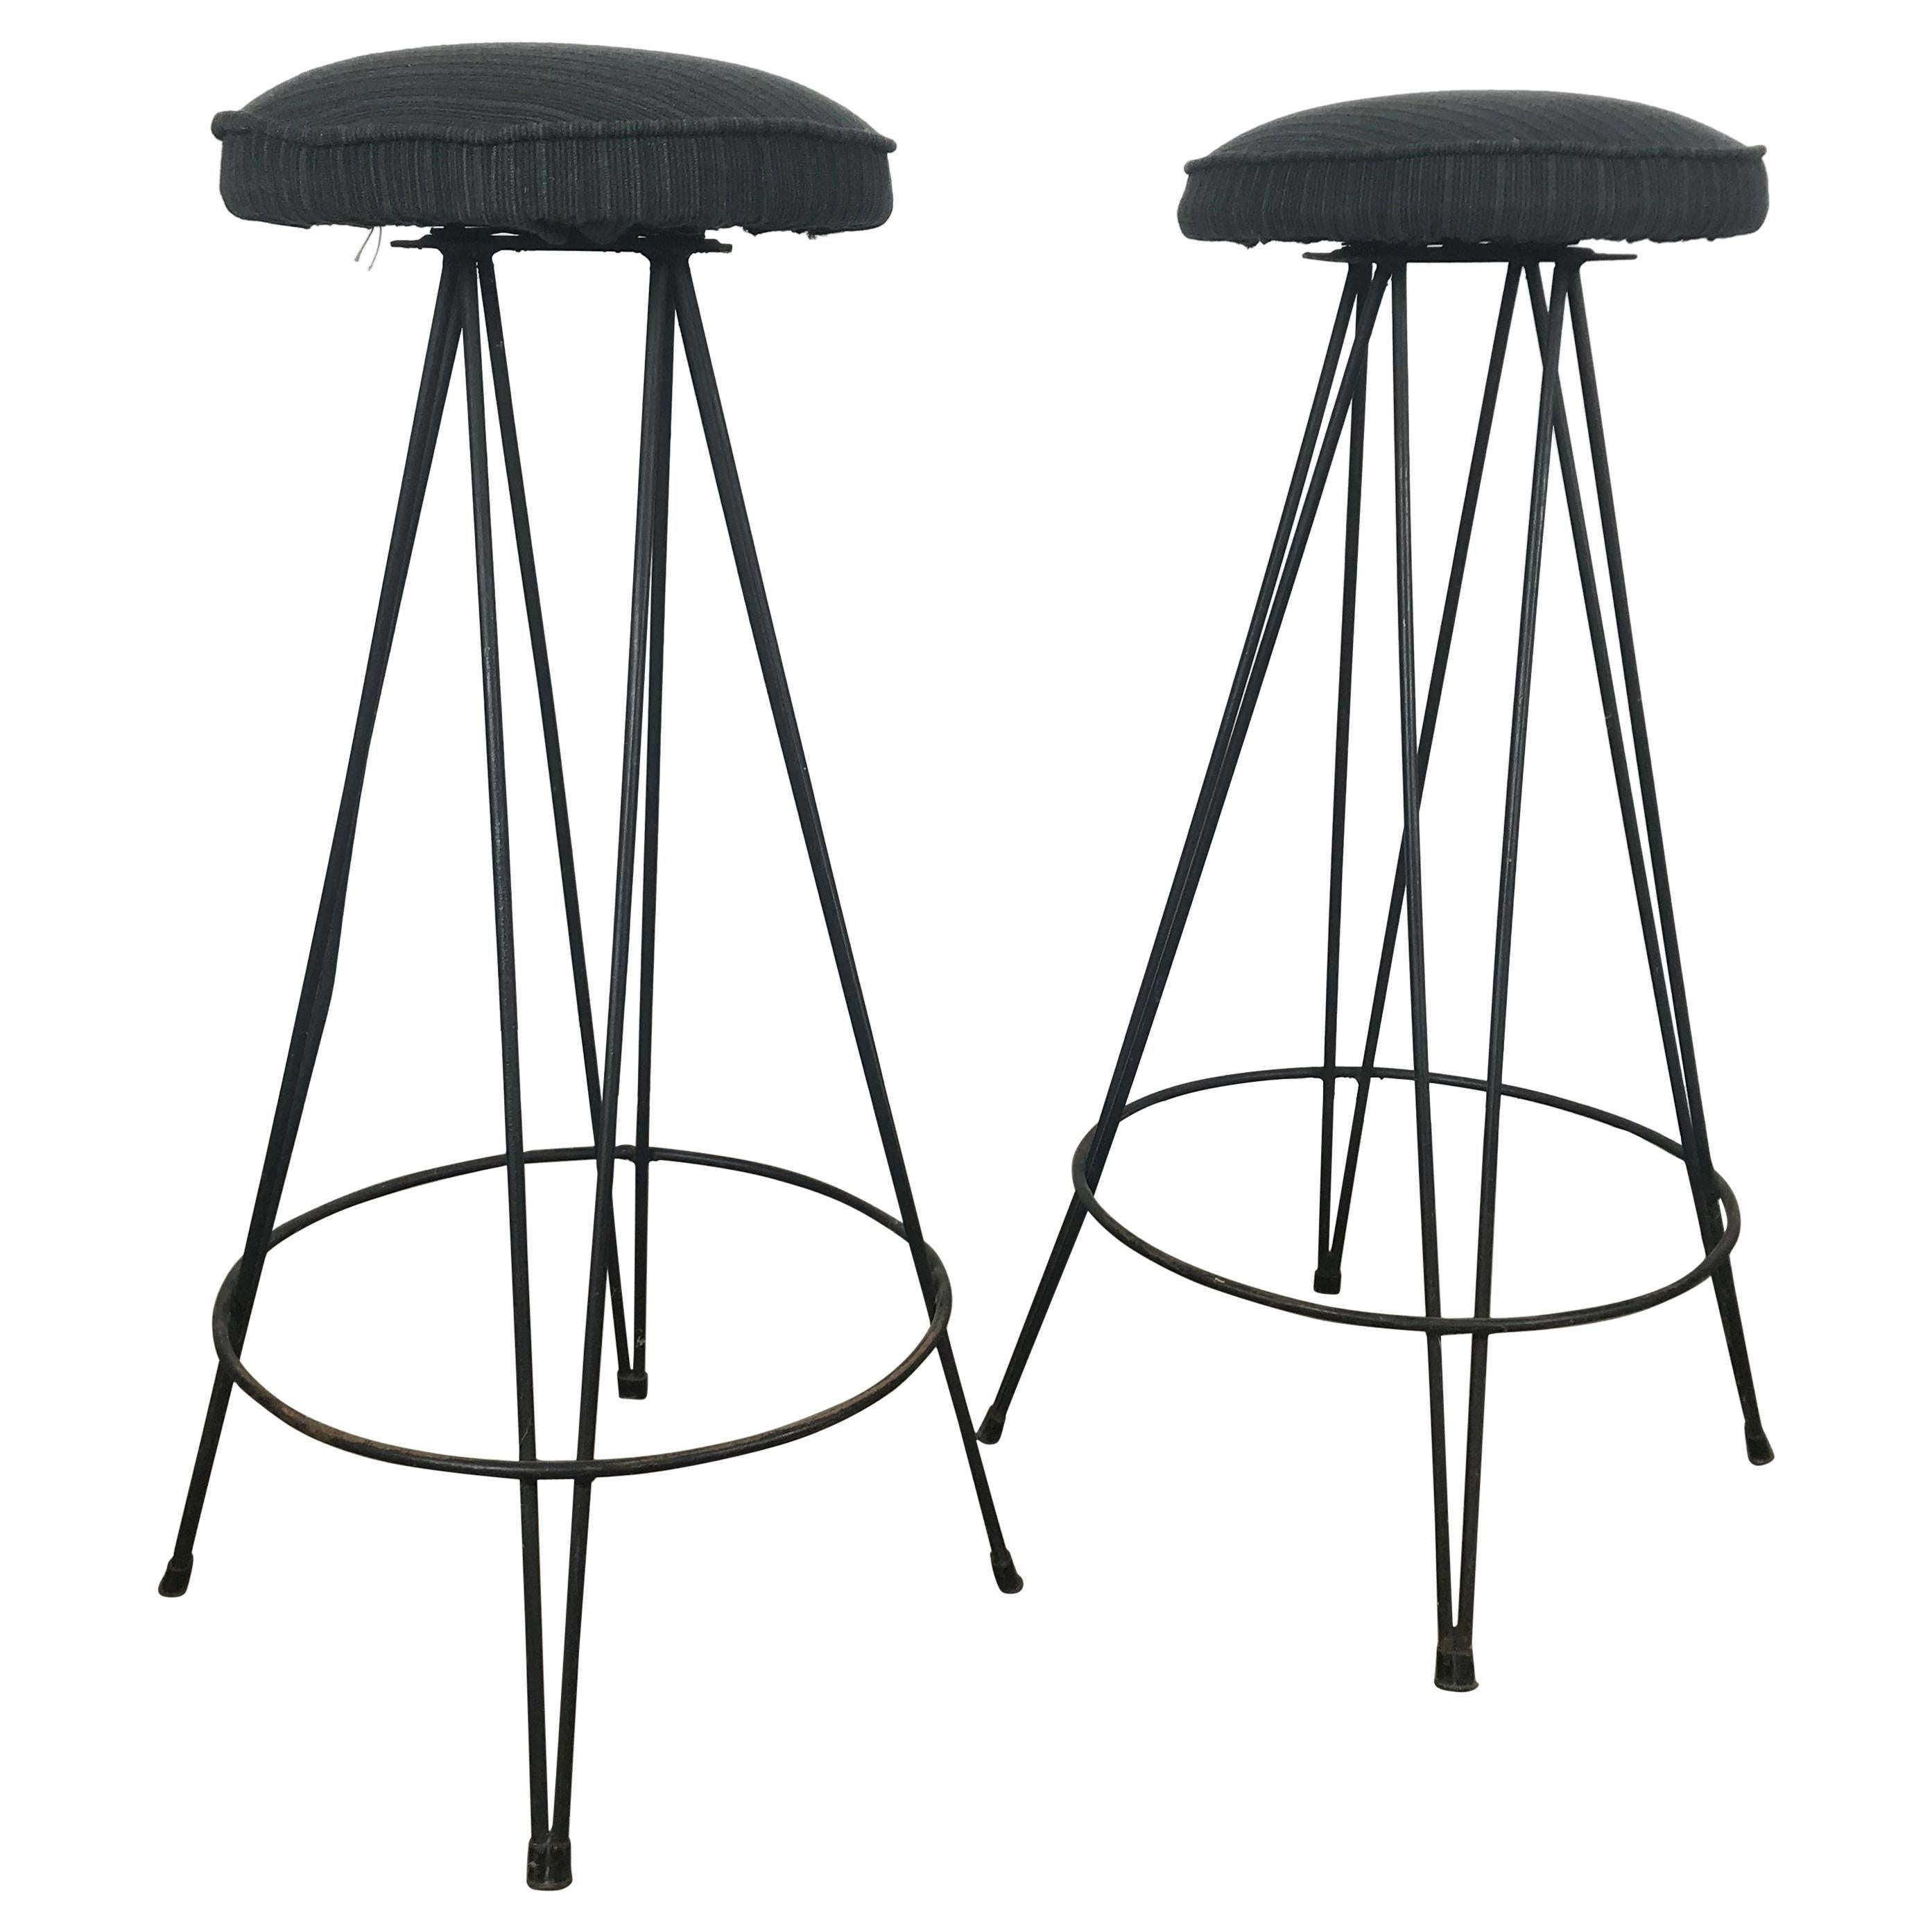 Magnificent Wrought Iron Bar Stools 57 For Sale On 1Stdibs Unemploymentrelief Wooden Chair Designs For Living Room Unemploymentrelieforg